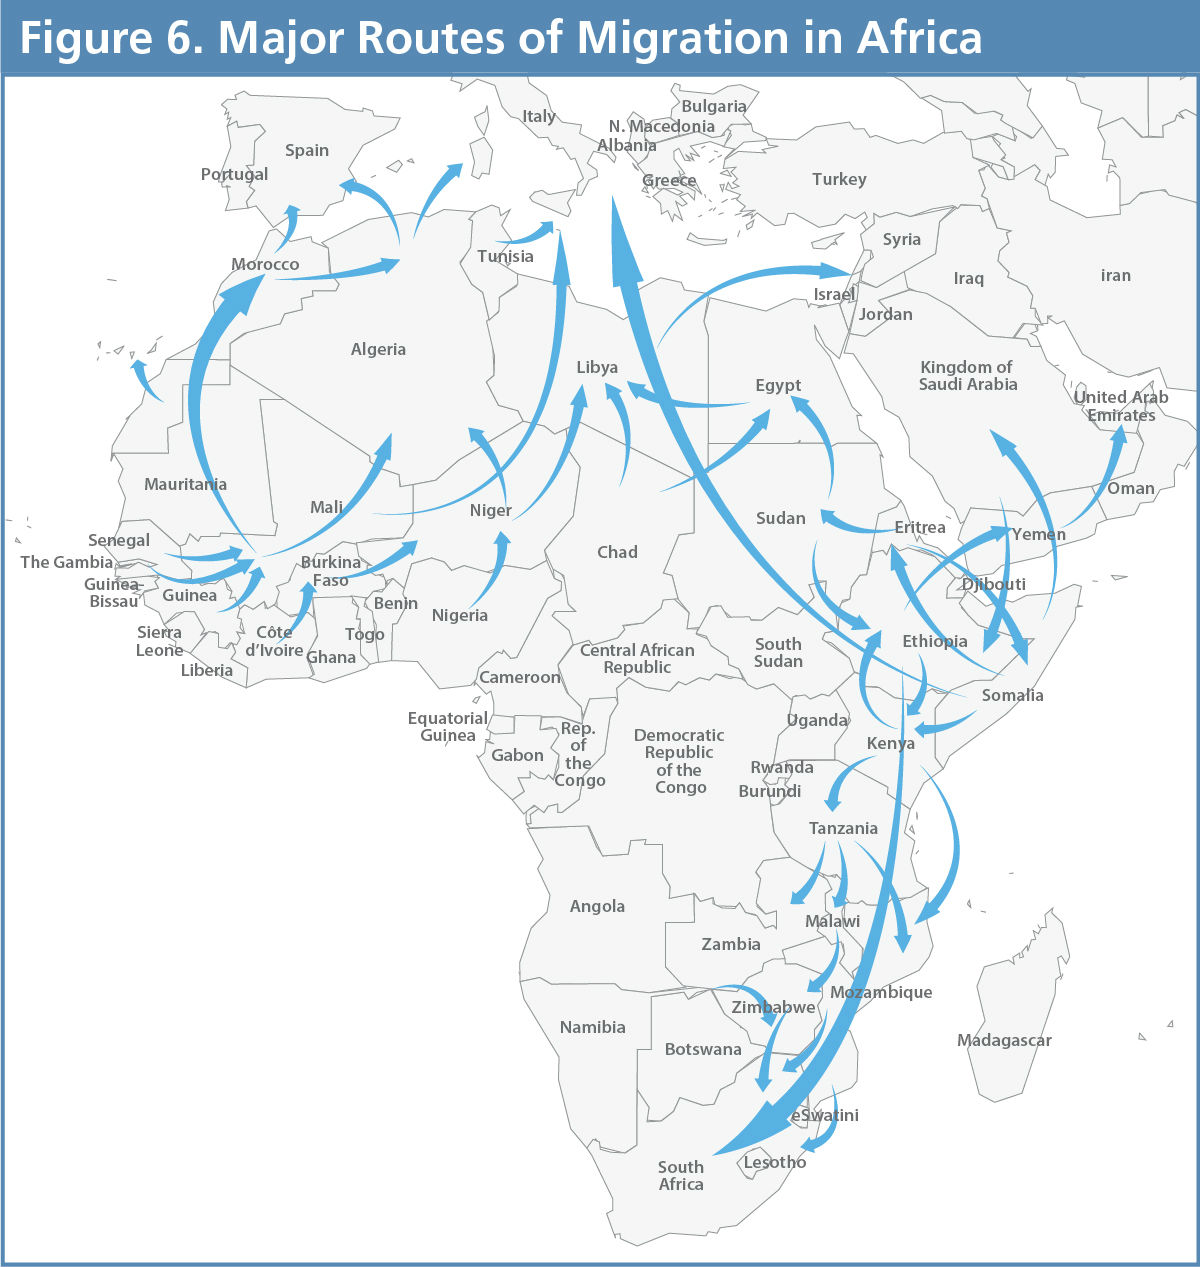 Shifting Borders Figure 6 - Major Routes of Migration in Africa